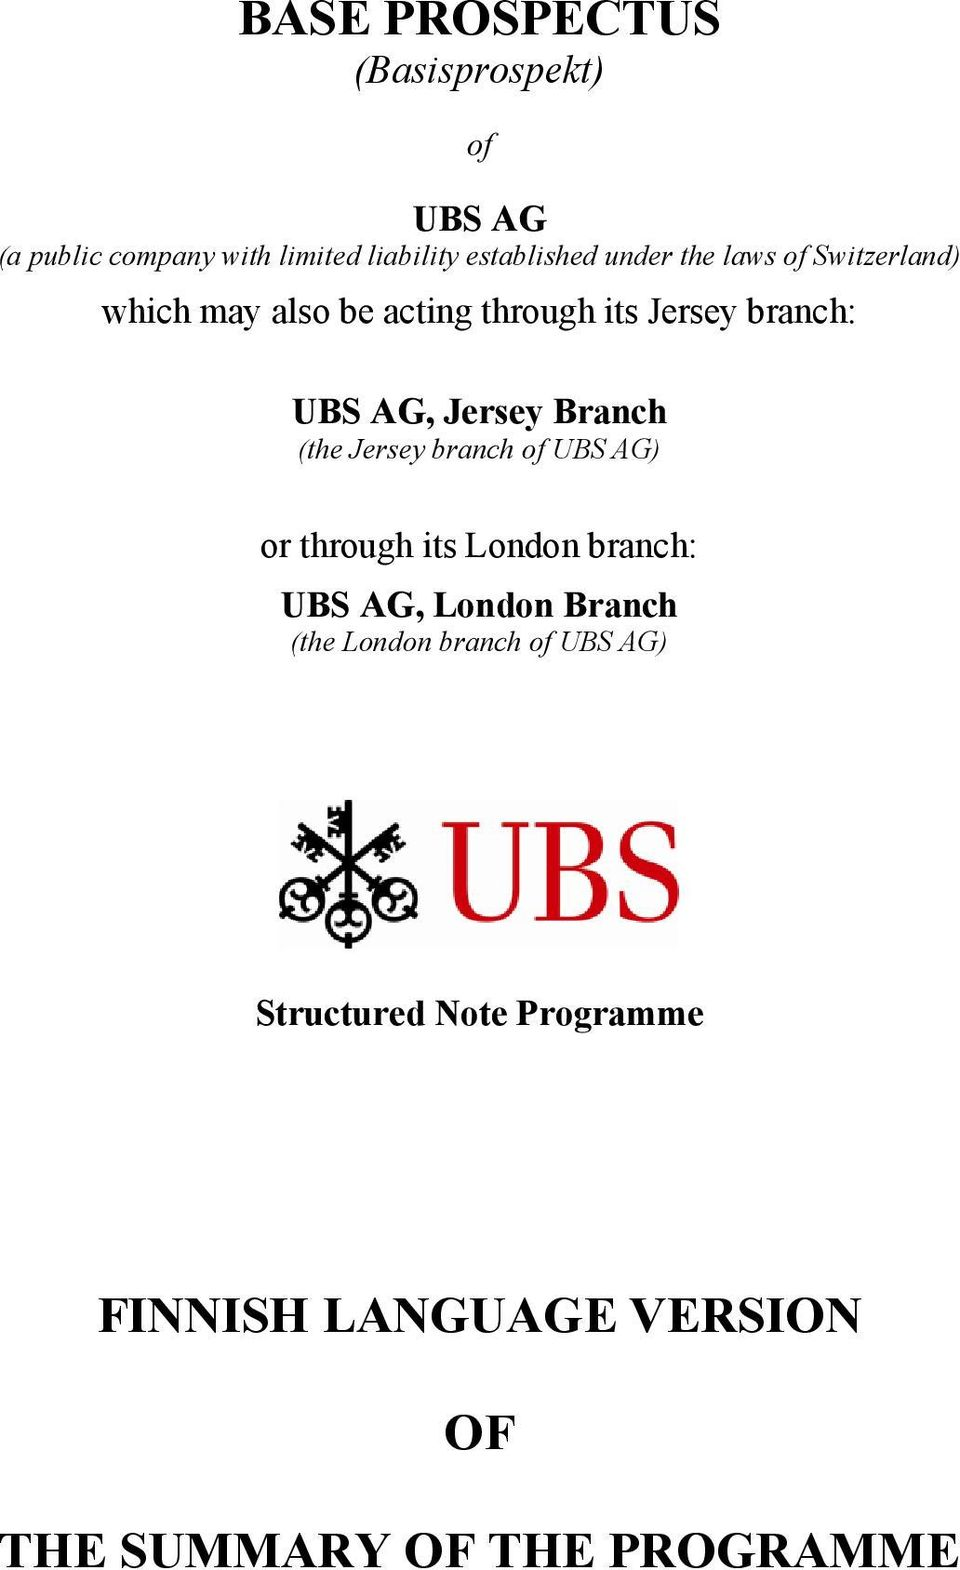 Branch (the Jersey branch of UBS AG) or through its London branch: UBS AG, London Branch (the